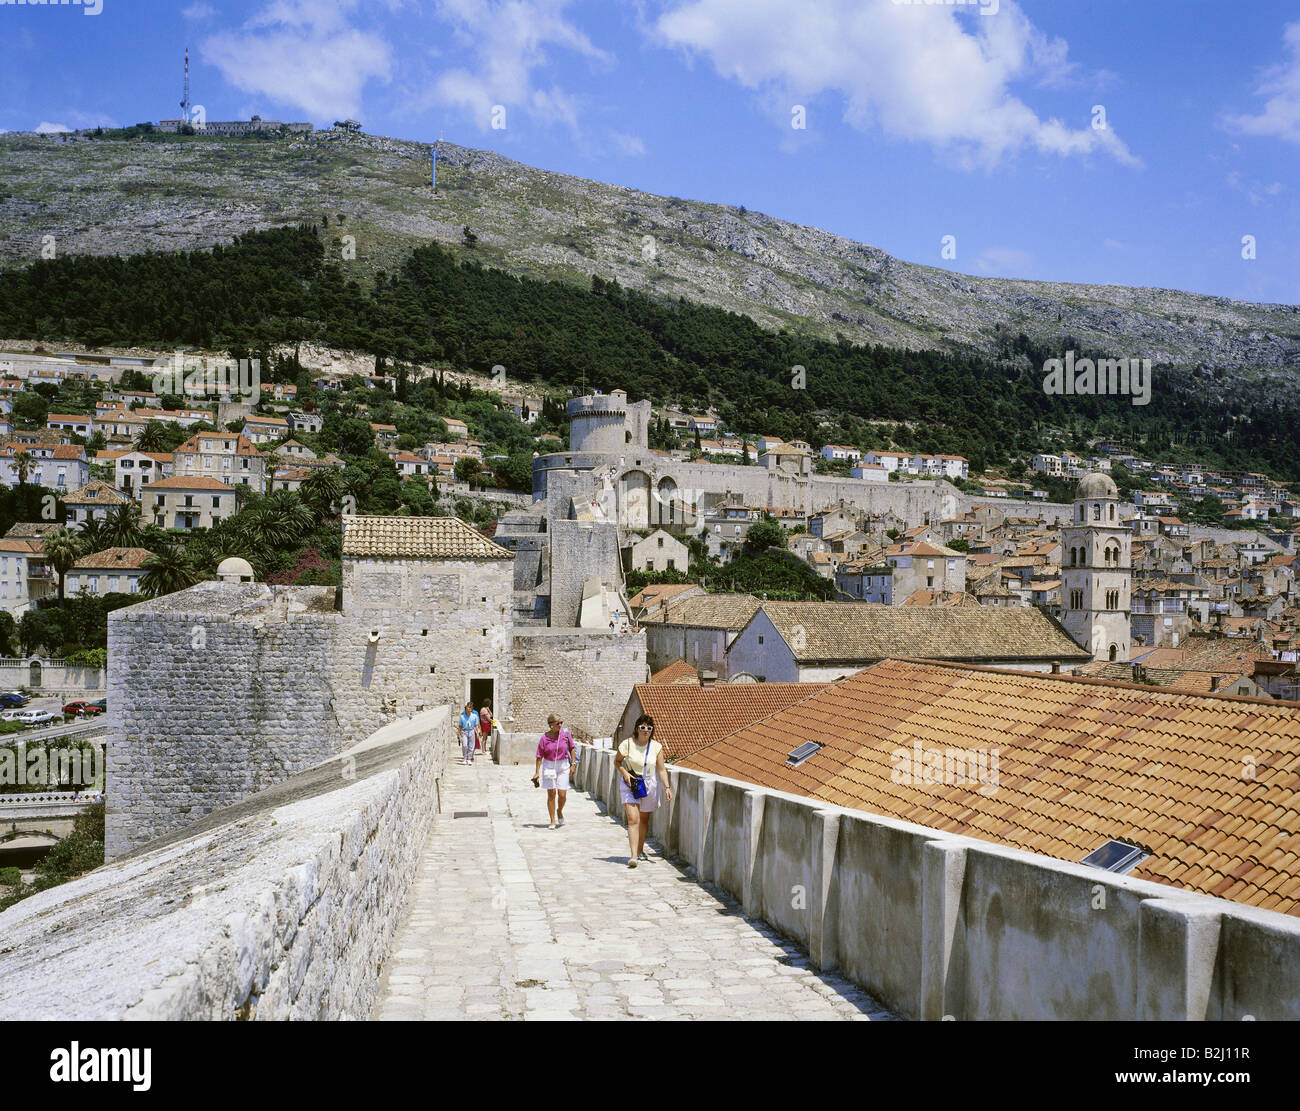 geography / travel, Croatia, Dubrovnic, overviews, city wall, roofs, roof, fortress, overview, view, gate Stock Photo